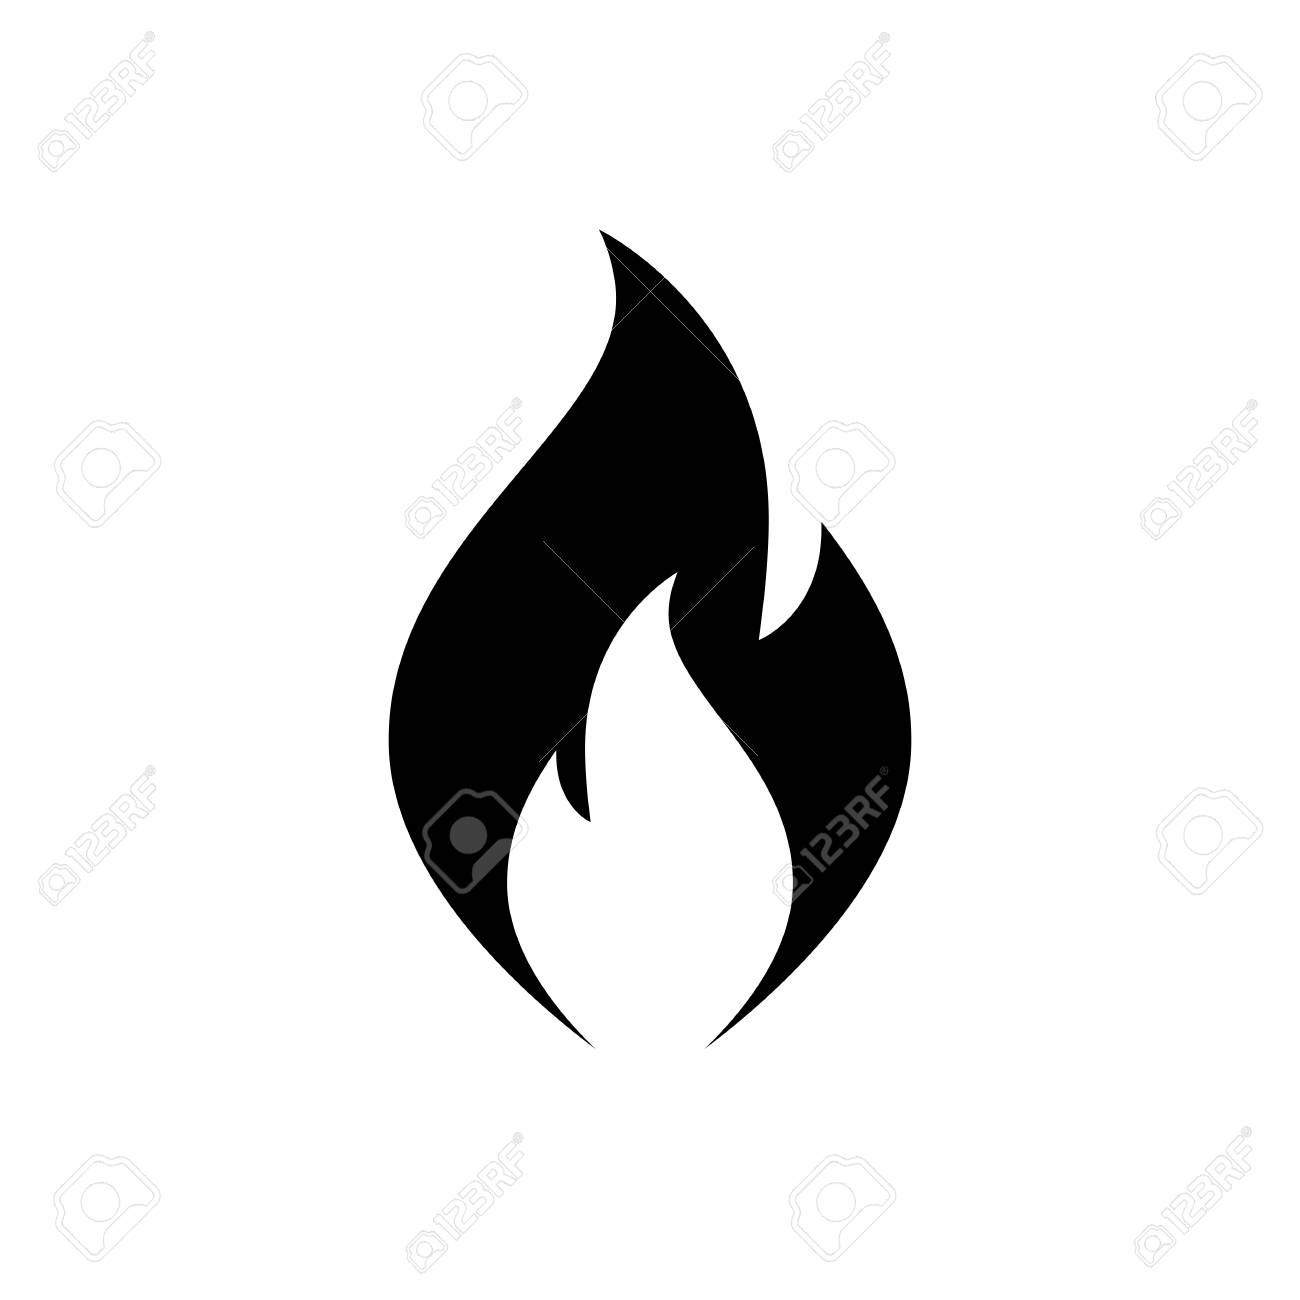 fire flame icon black